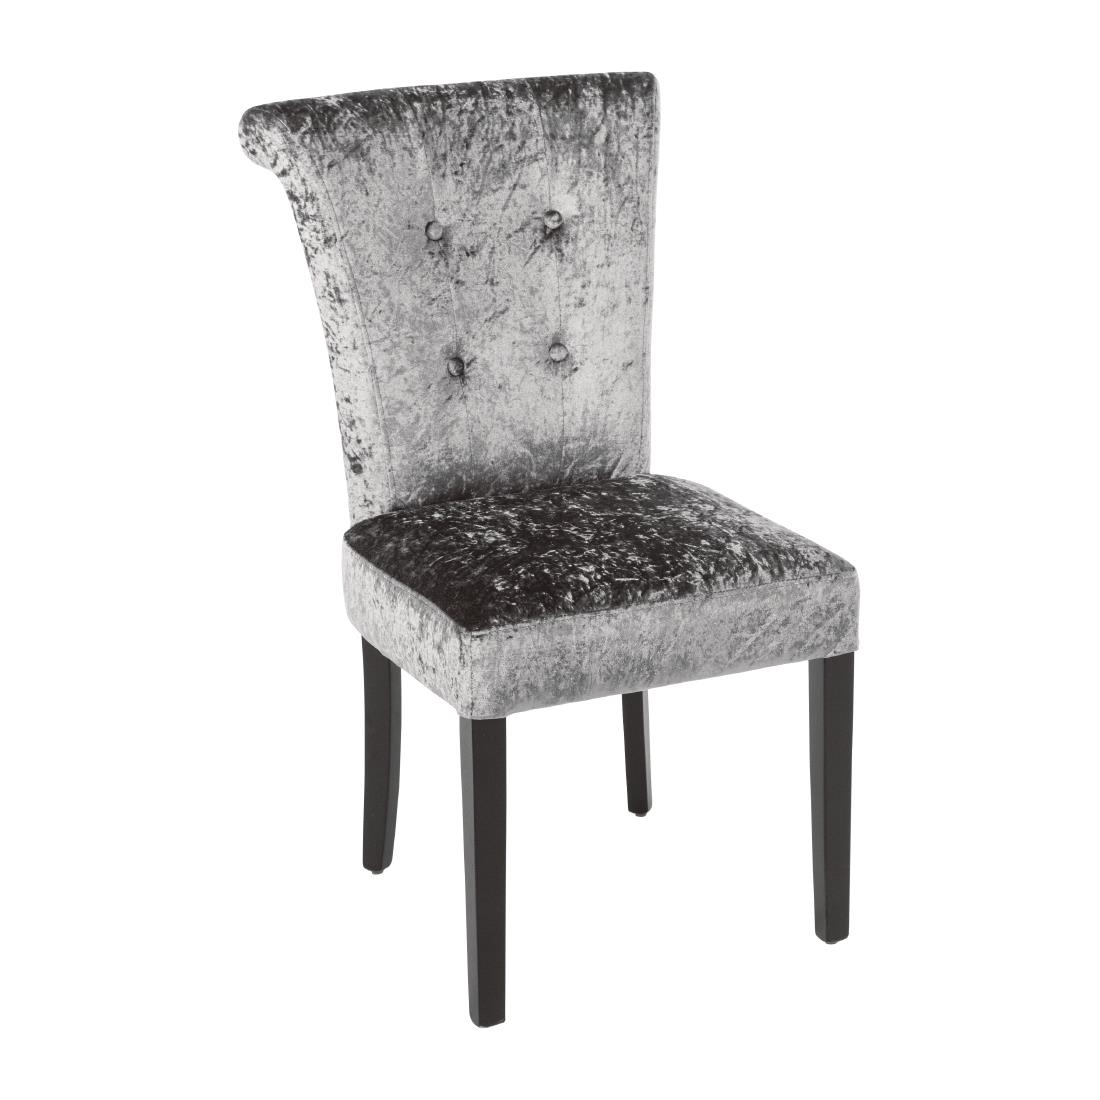 Bolero Olive Grey Crushed Velvet Dining Chair Pack Of 2 Dr308